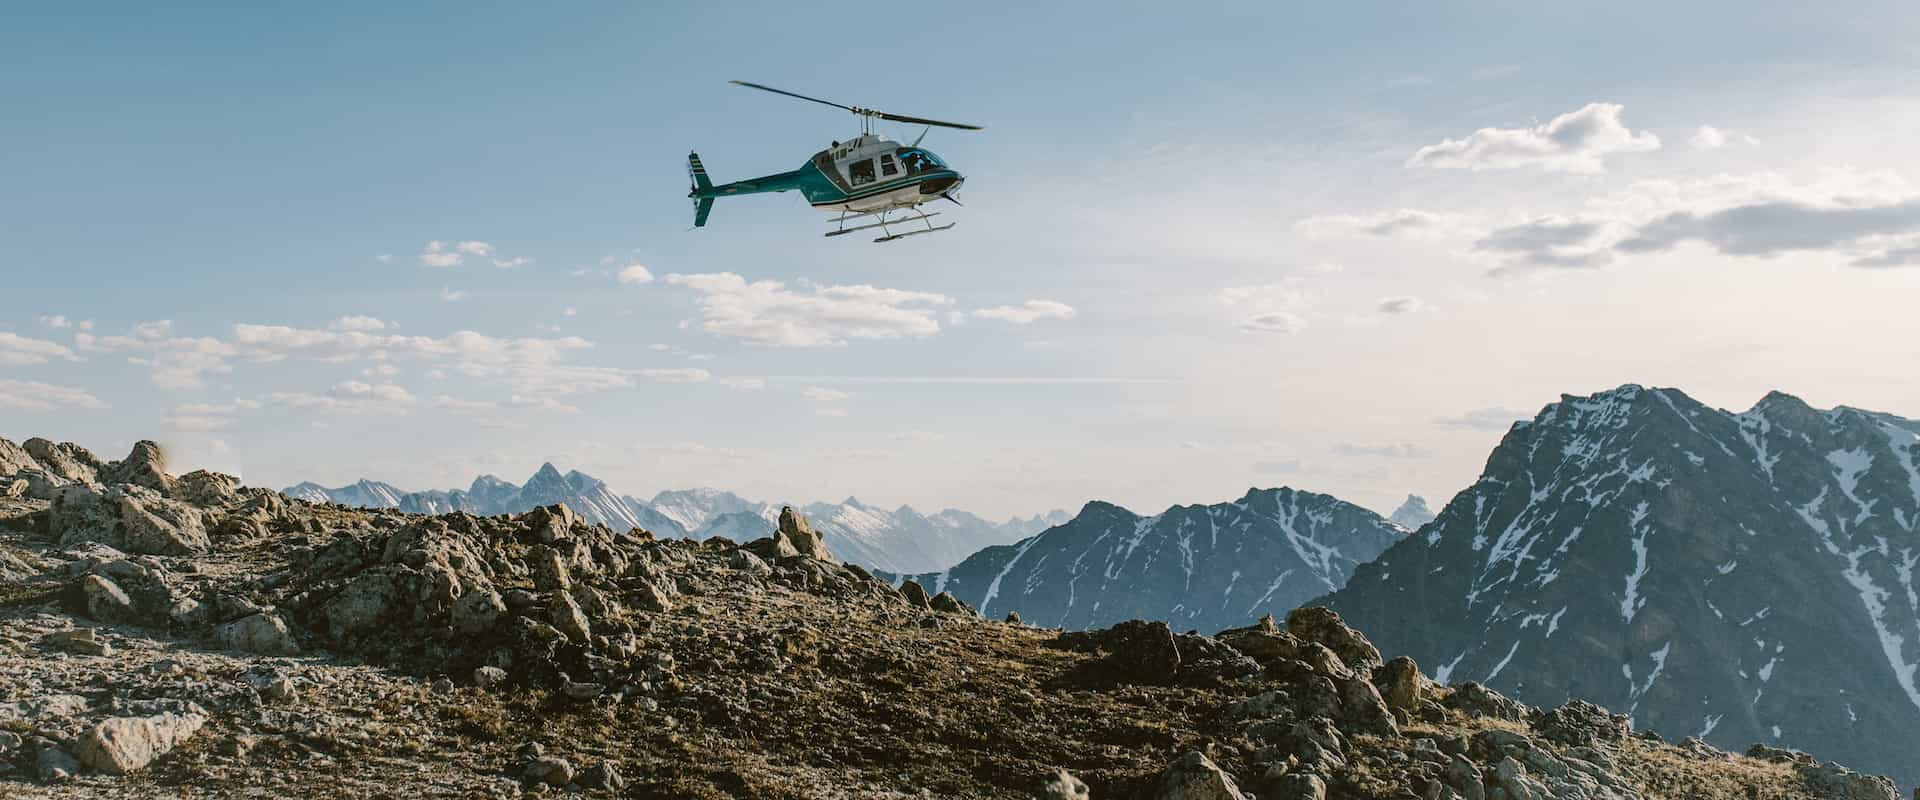 Rockies Heli Sightseeing Tours at the Icefields